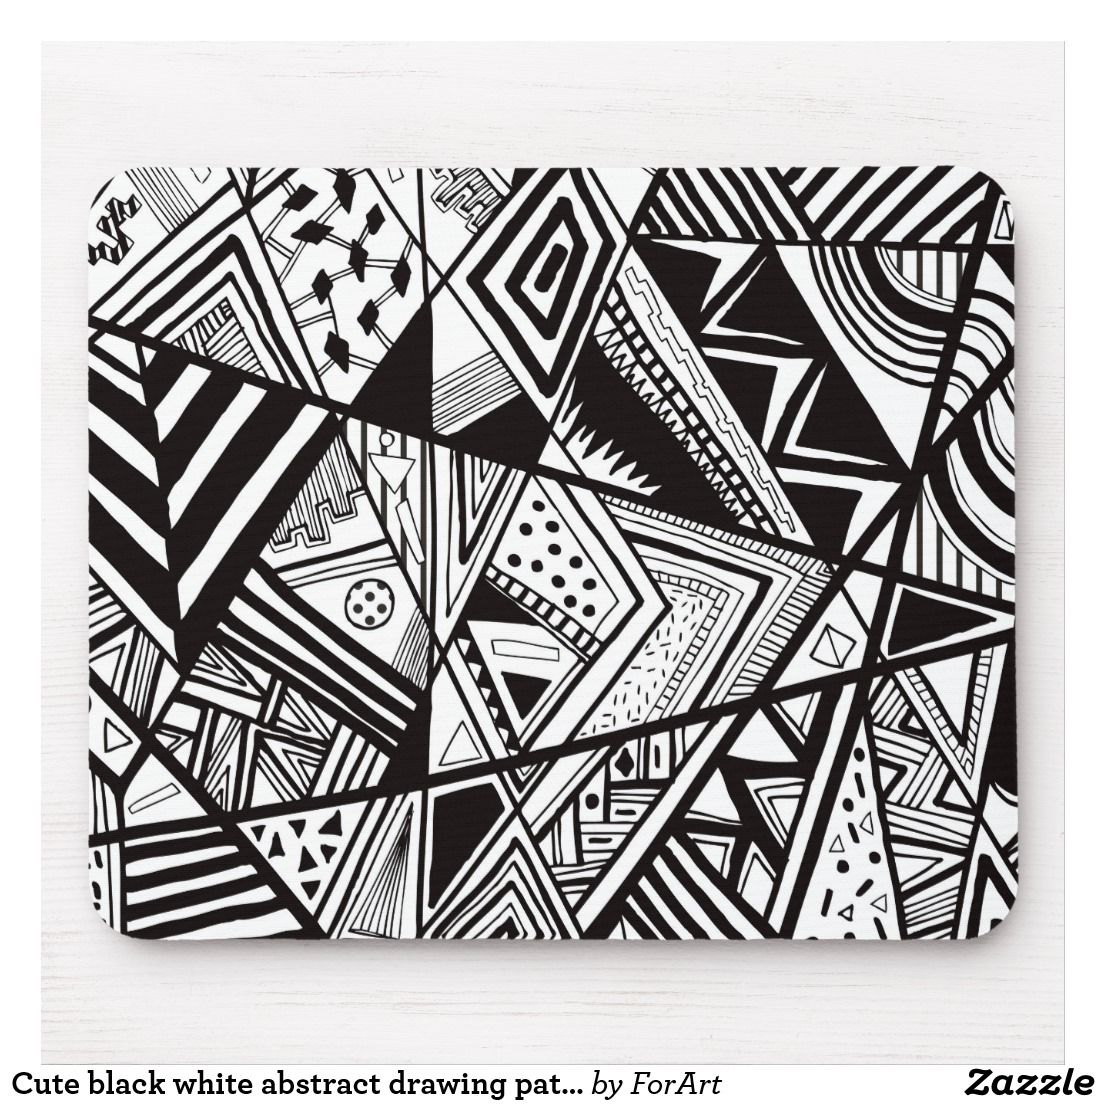 Cute Black White Abstract Drawing Patterns Mouse Pad Abstract Drawings Drawing Pattern Black And White Drawing Black and white abstract drawings